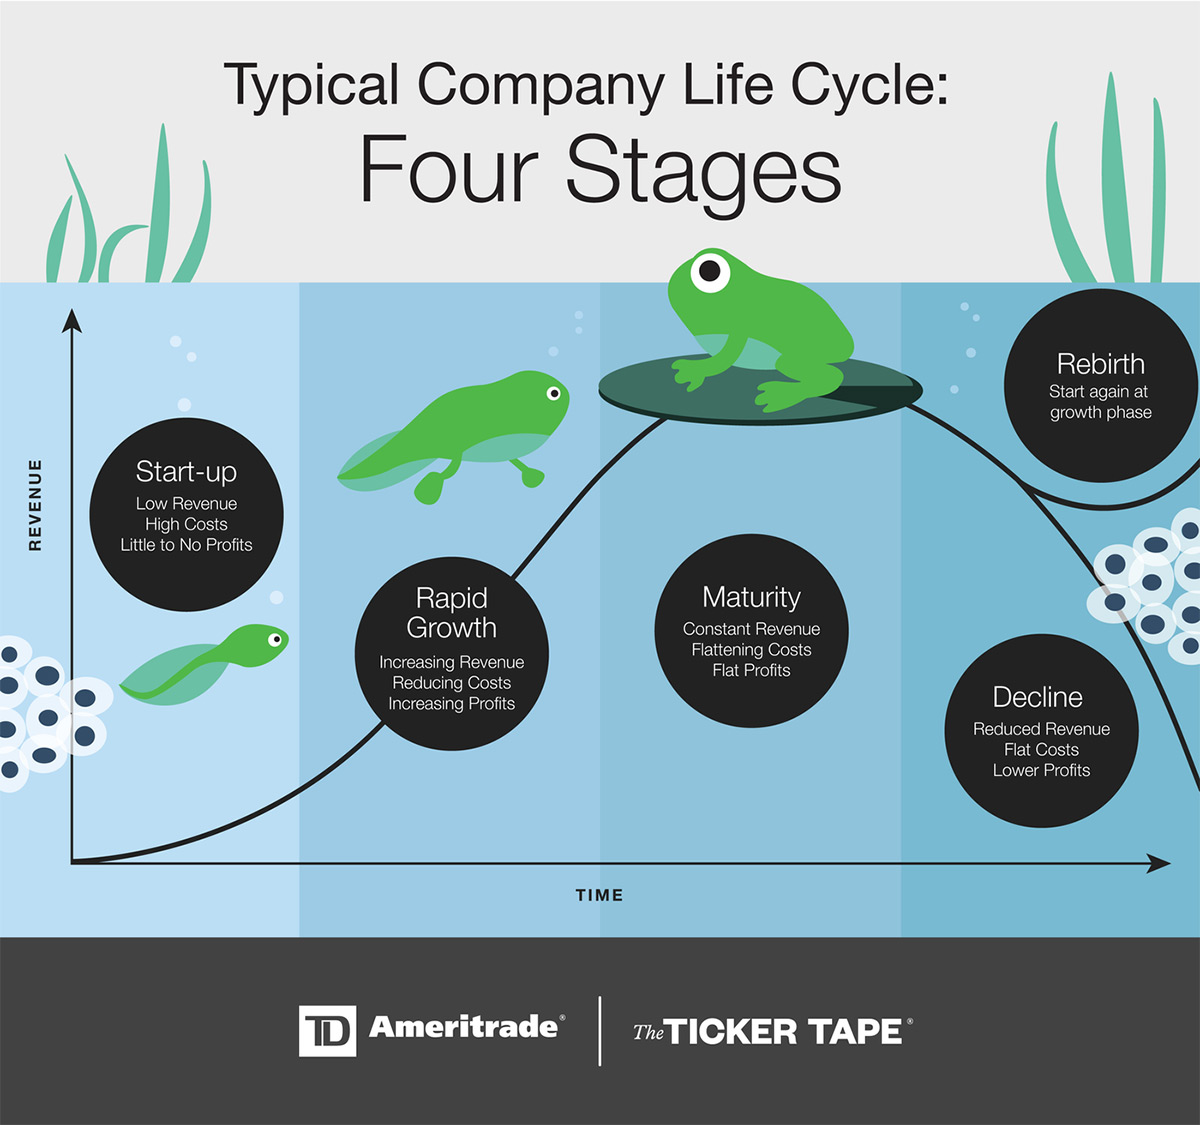 Company Life Cycle: Four Stages